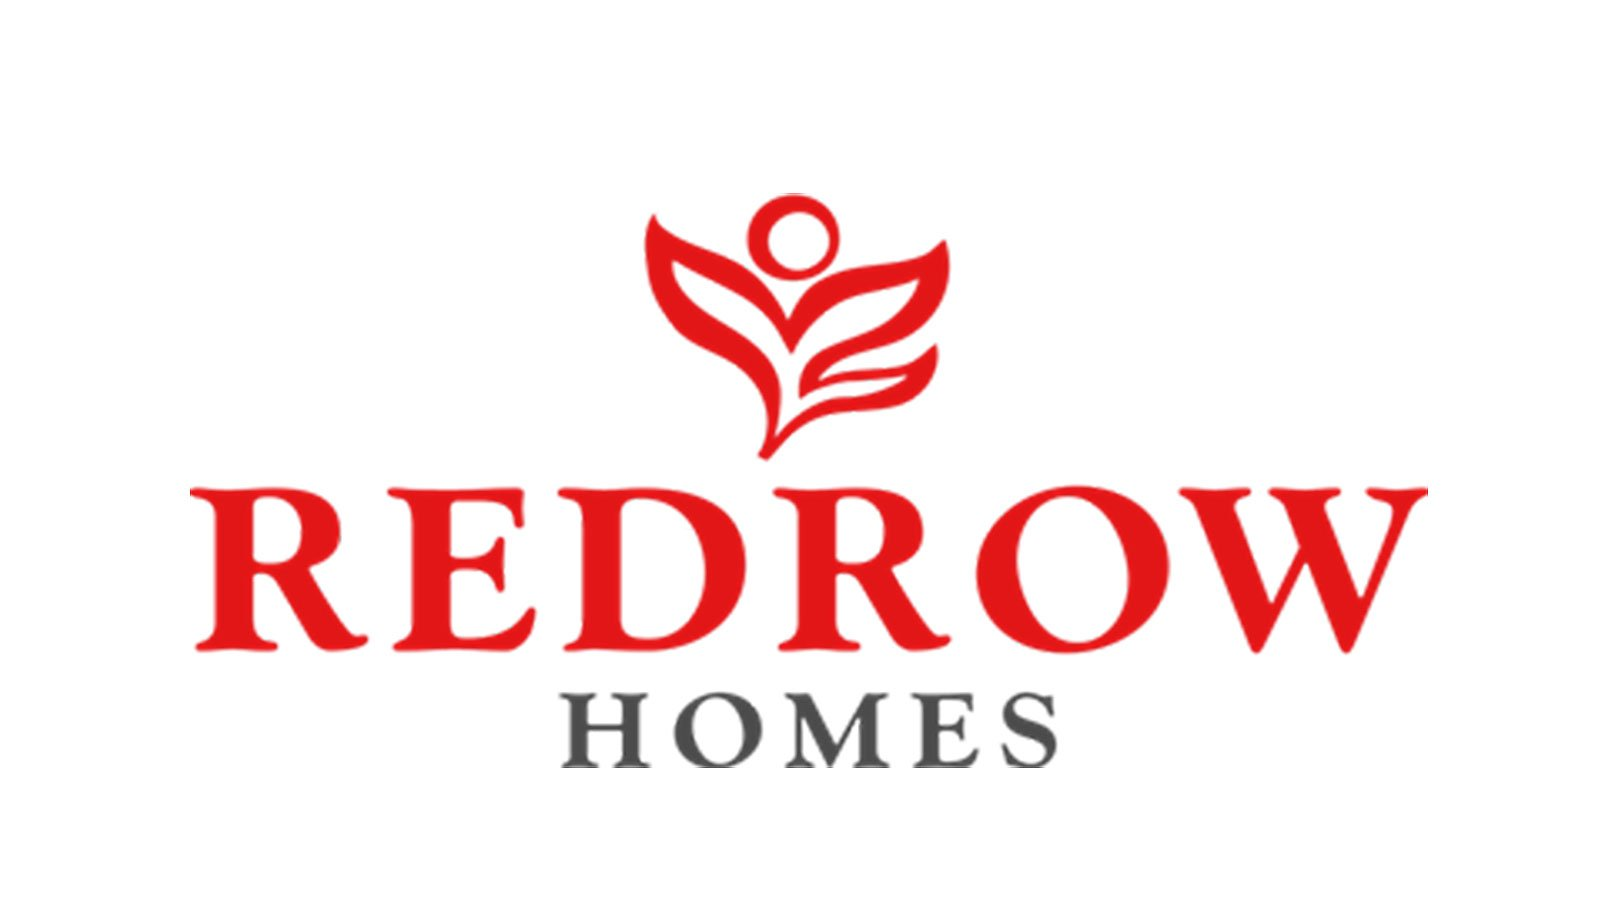 Redrow Homes selects Asite's Adoddle as their Enterprise Common Data Environment